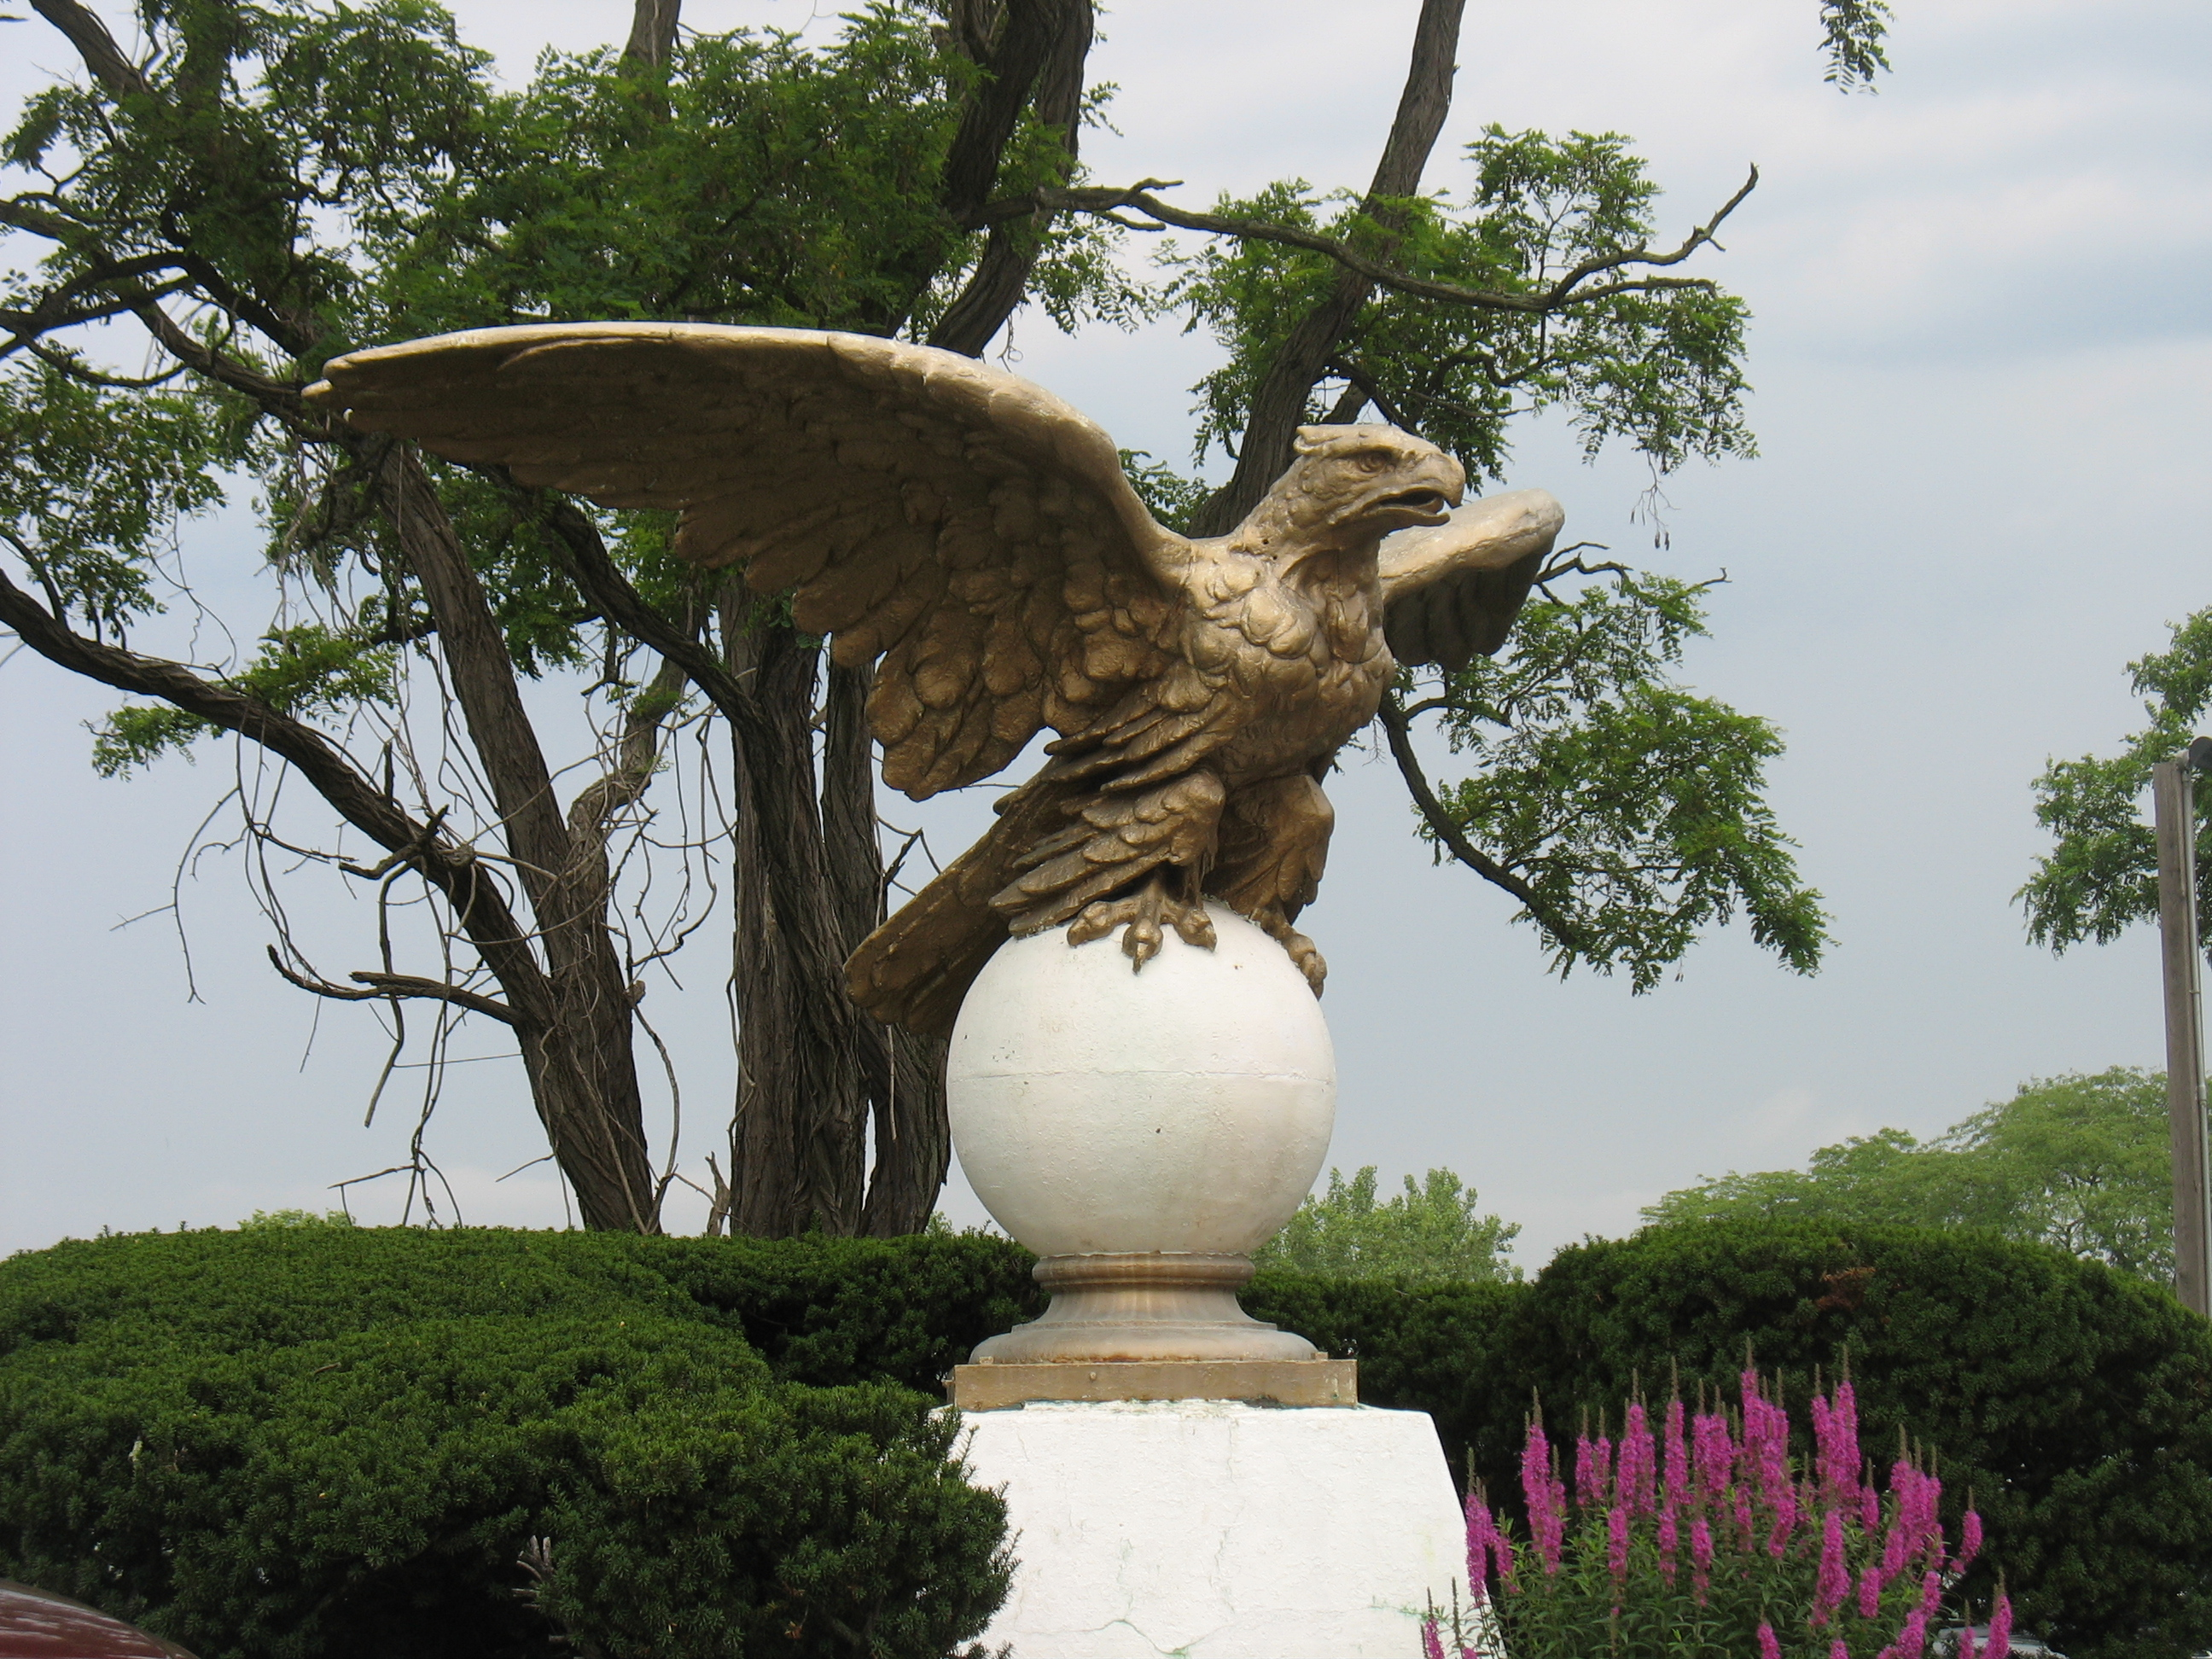 The Eagle at Philpse Manor Train Station